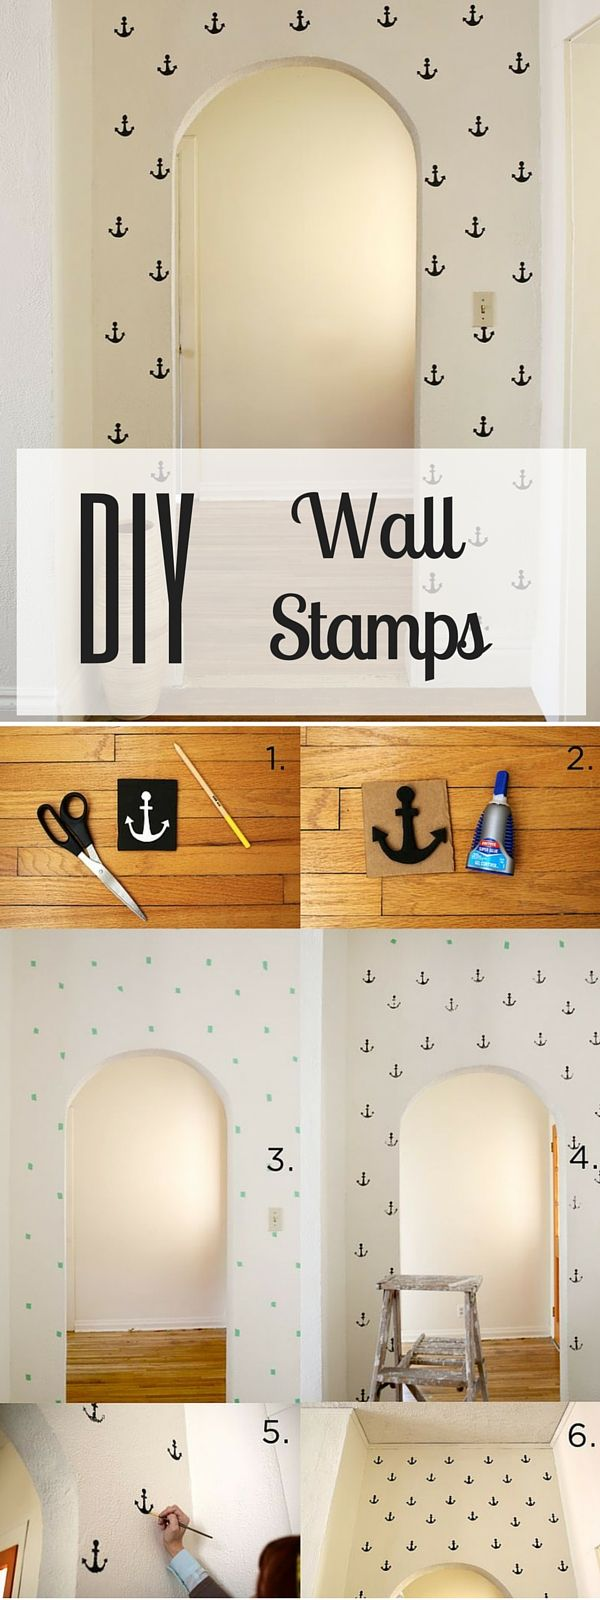 Check out the tutorial: #DIY Wall Stamps #crafts #homedecor